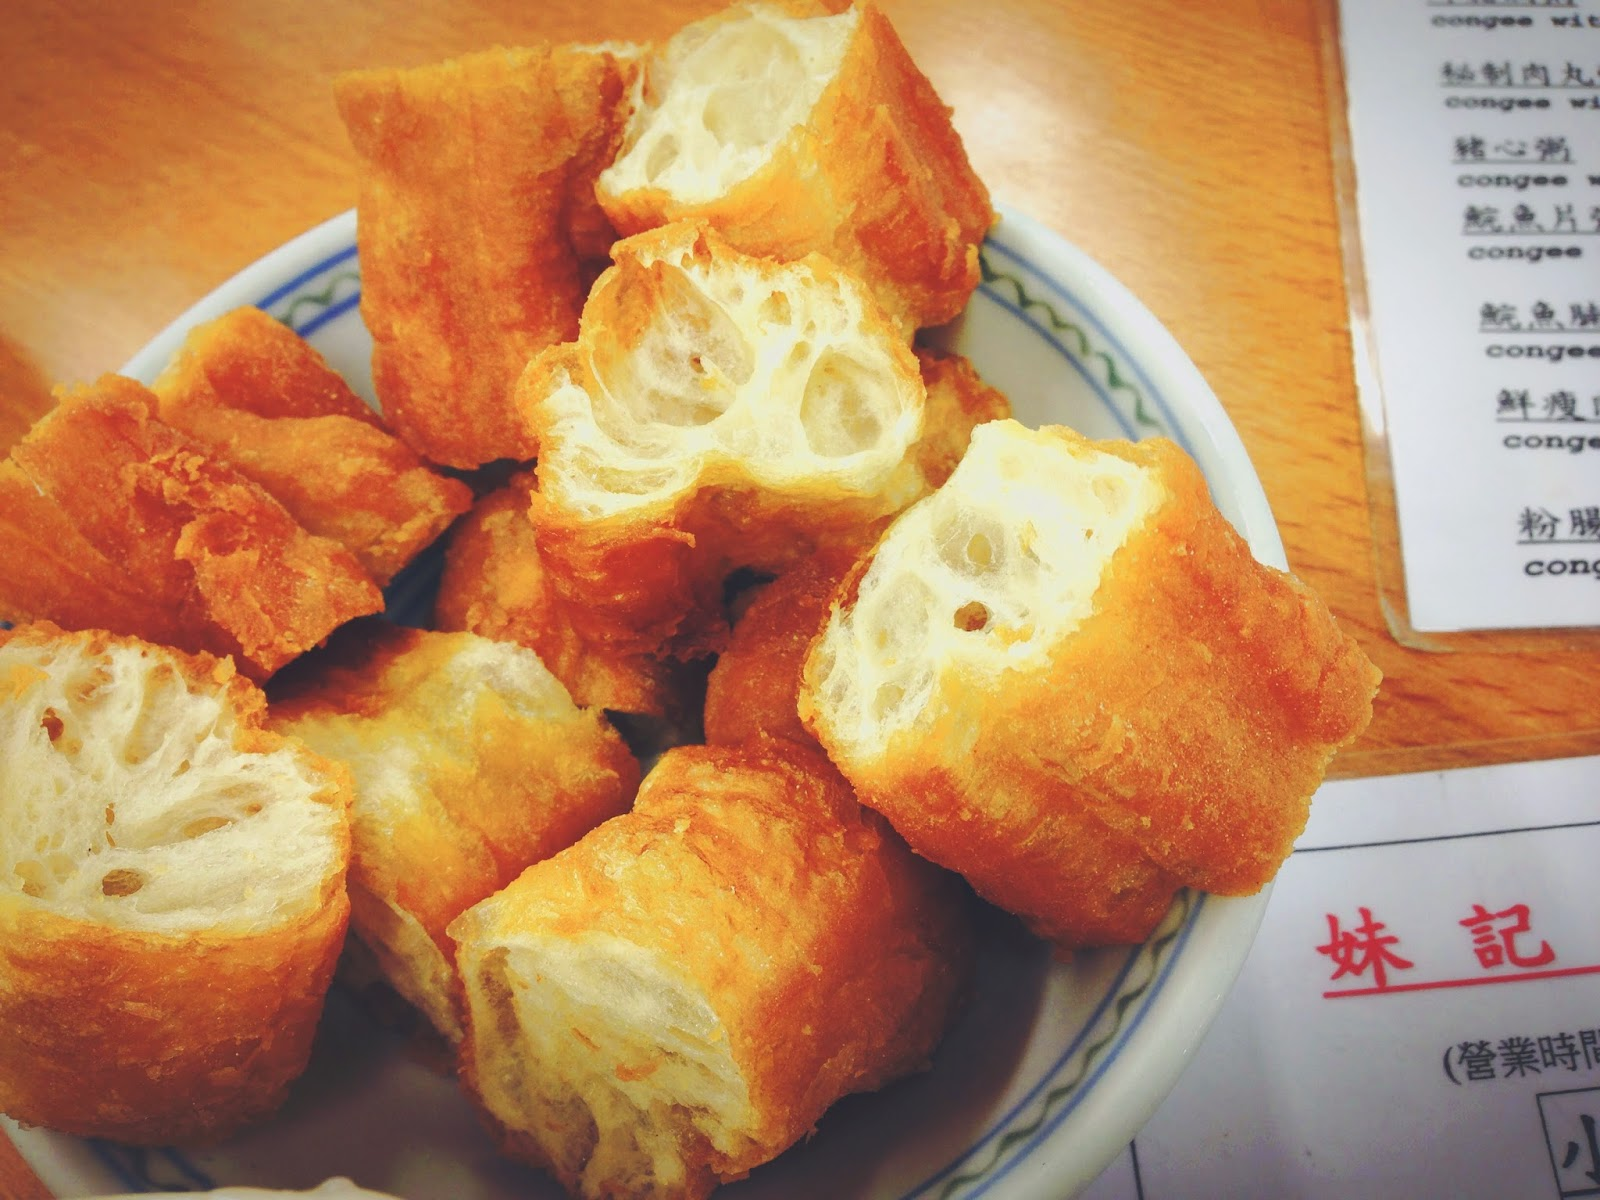 Fried Dough You Tiao At Mui Kee Congee HK